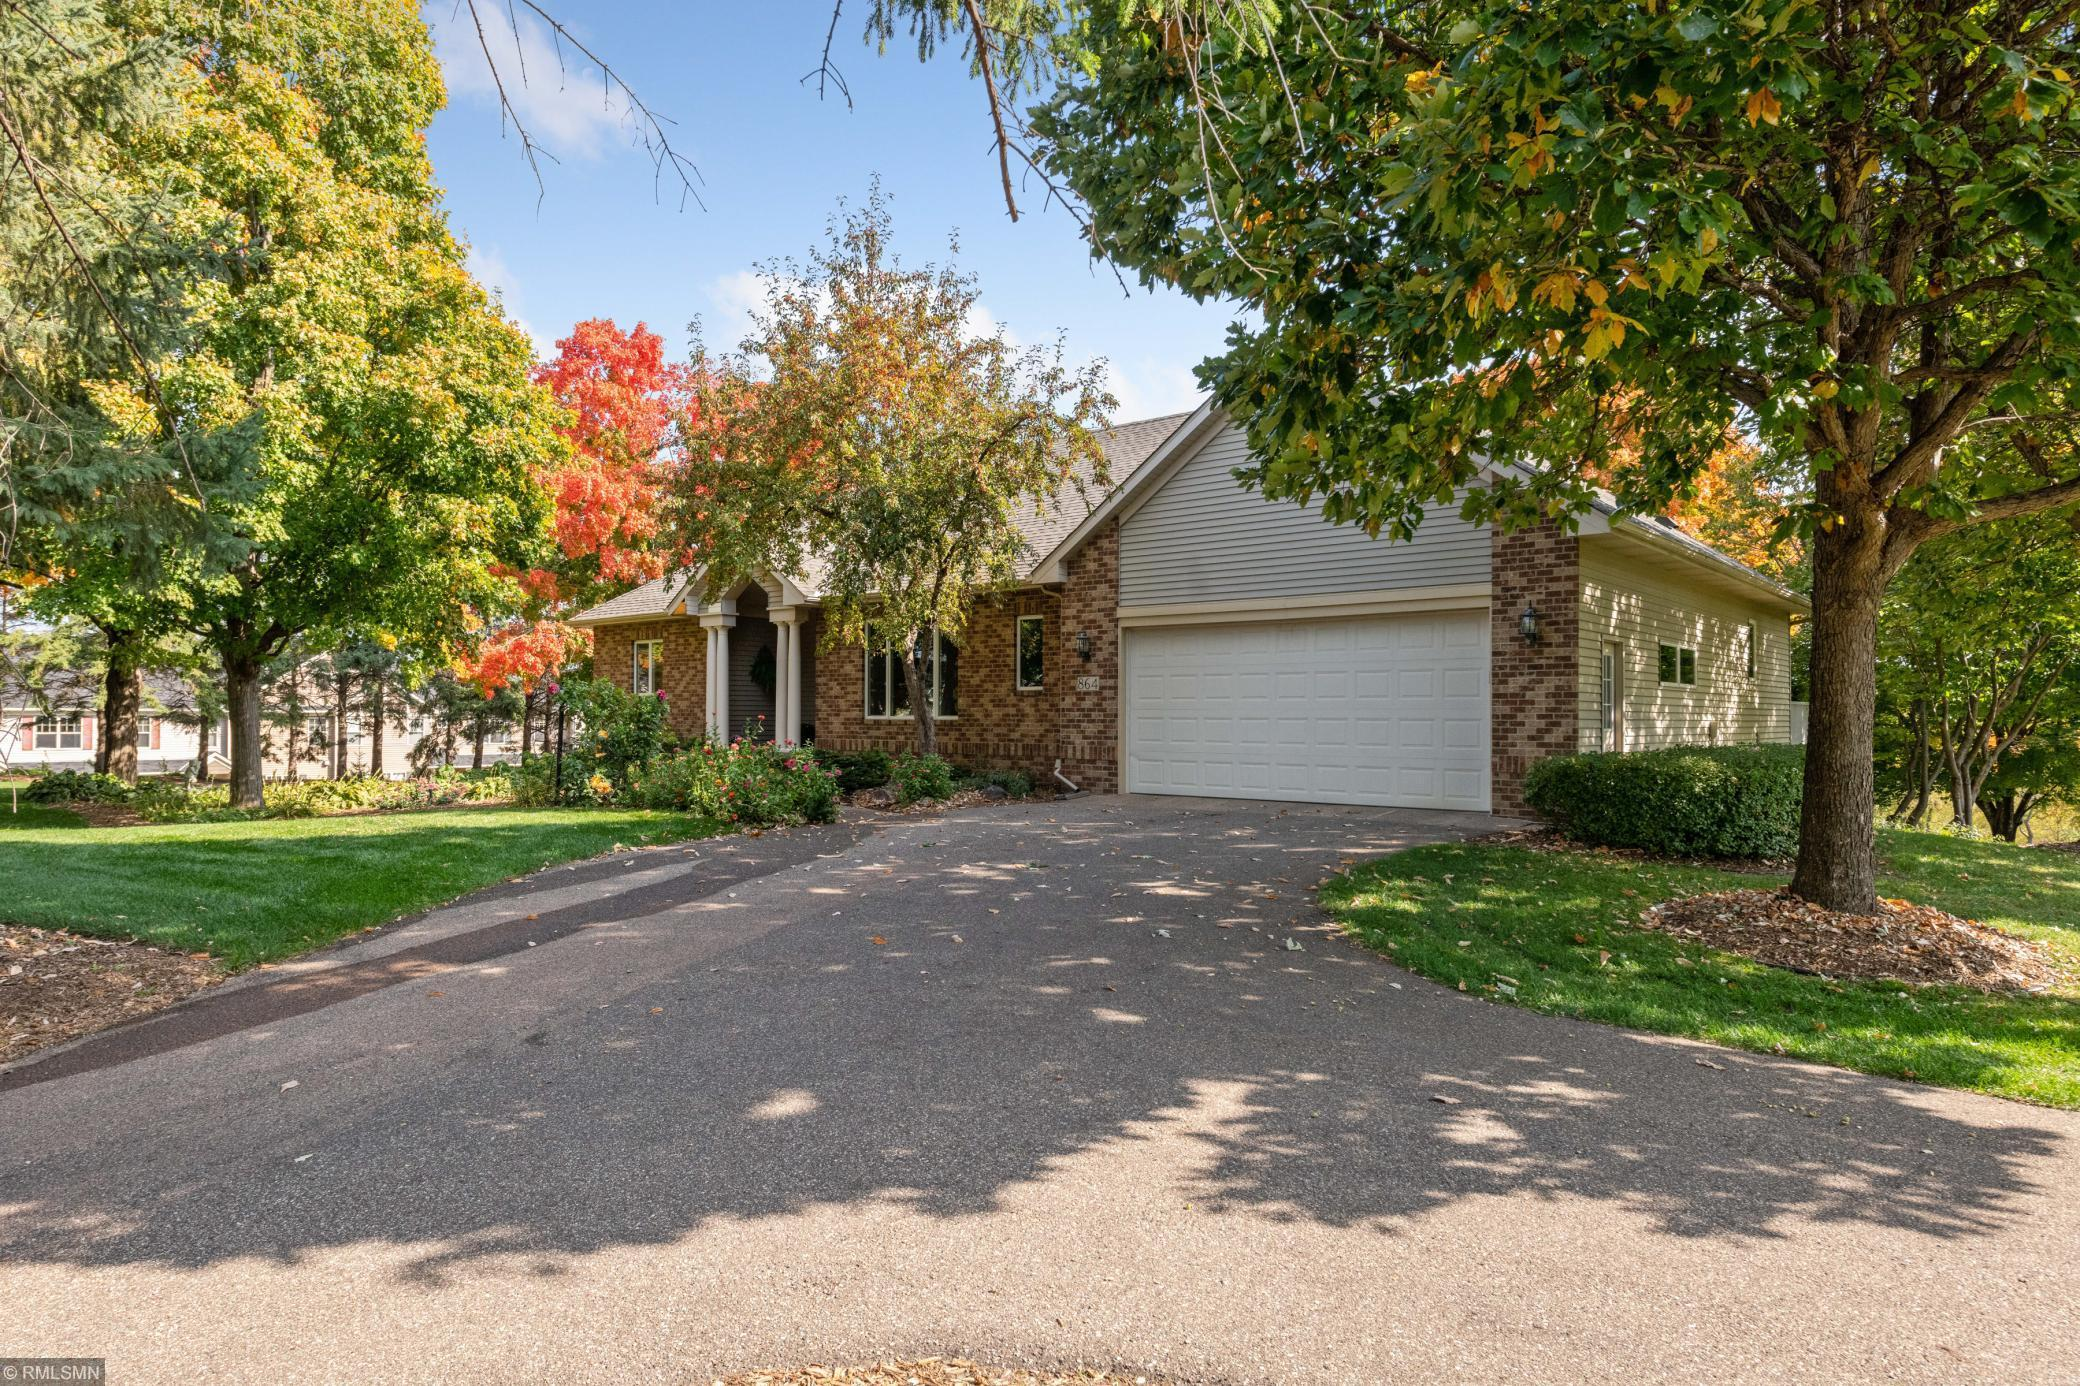 864 78th Street Property Photo - Victoria, MN real estate listing